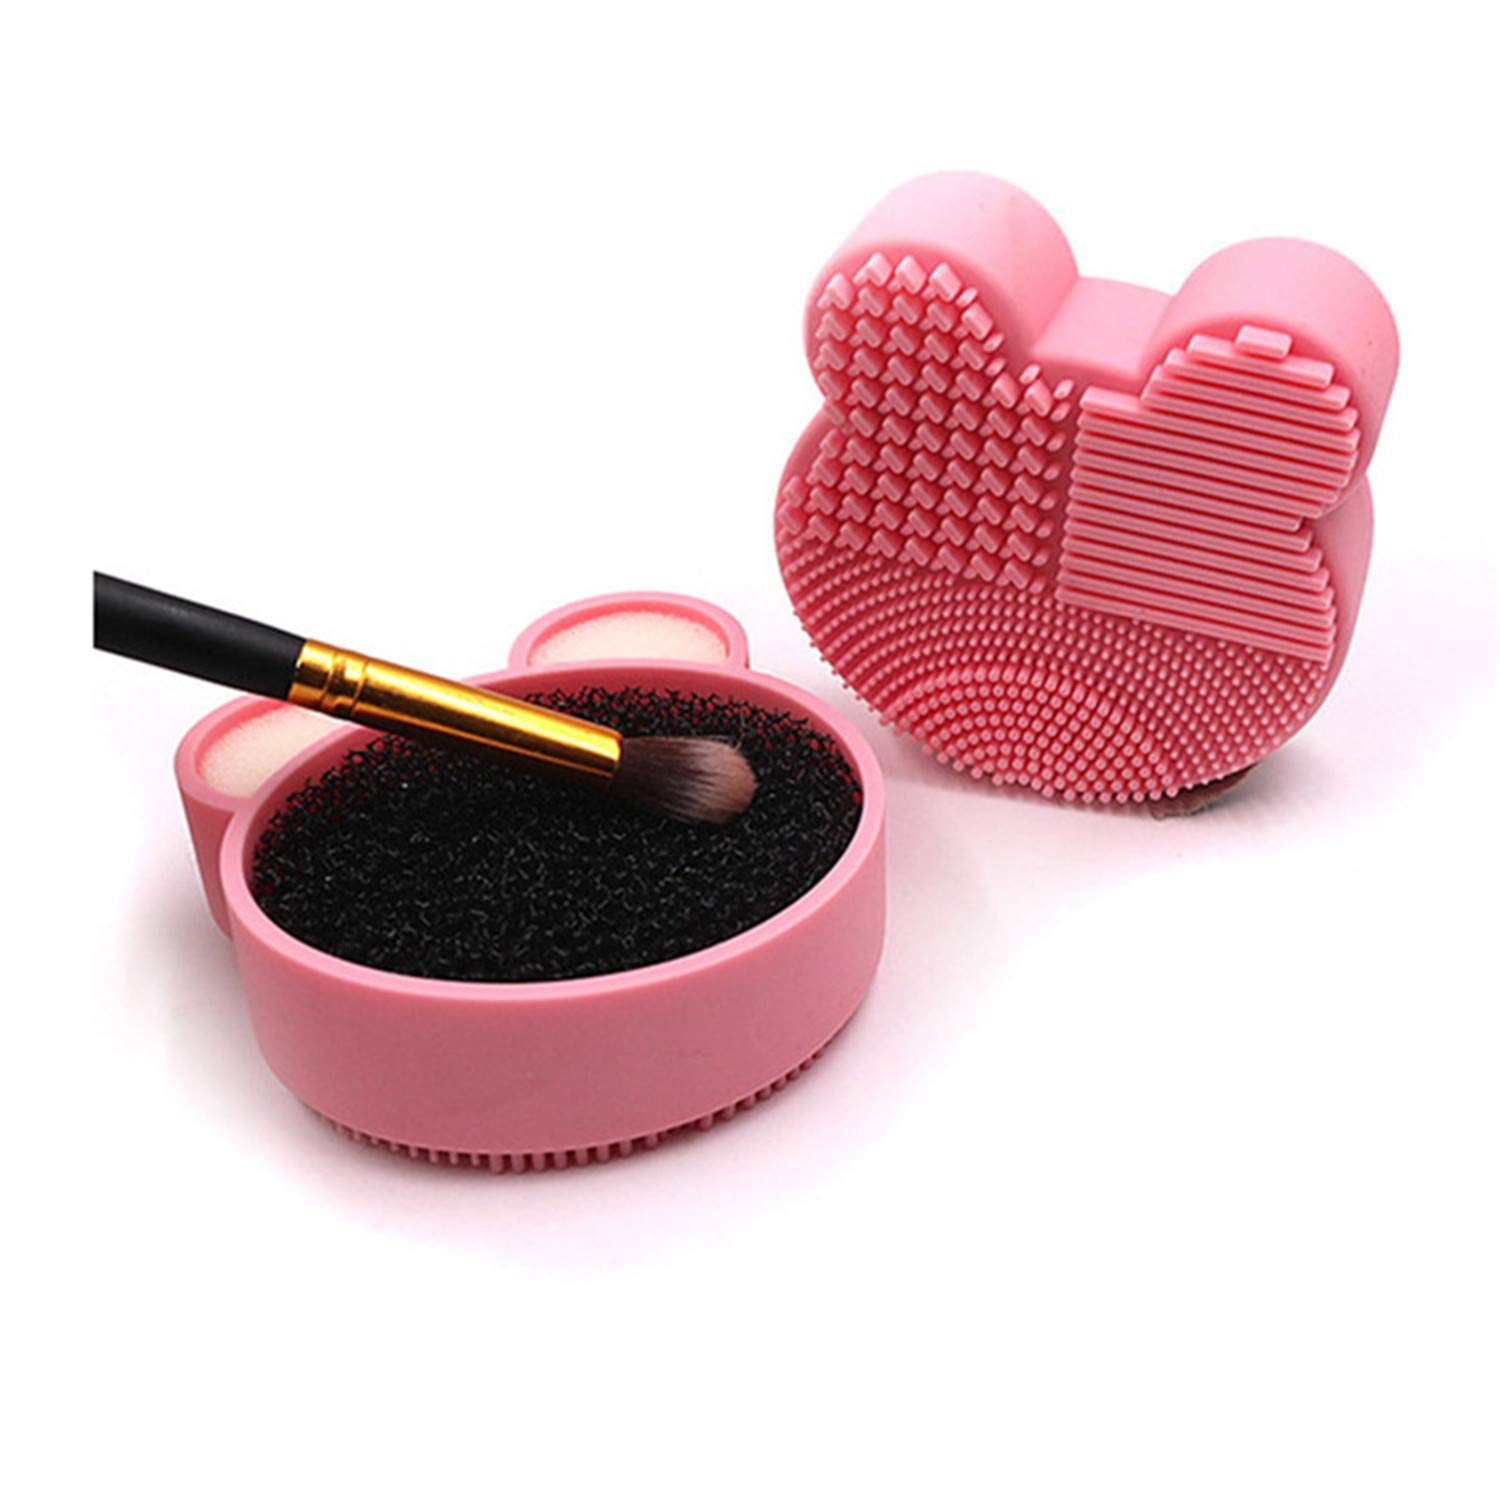 AnHua Lovely Bear Sales results No. 1 Makeup Brush Washing Cleaner Cleanin Super special price Pad